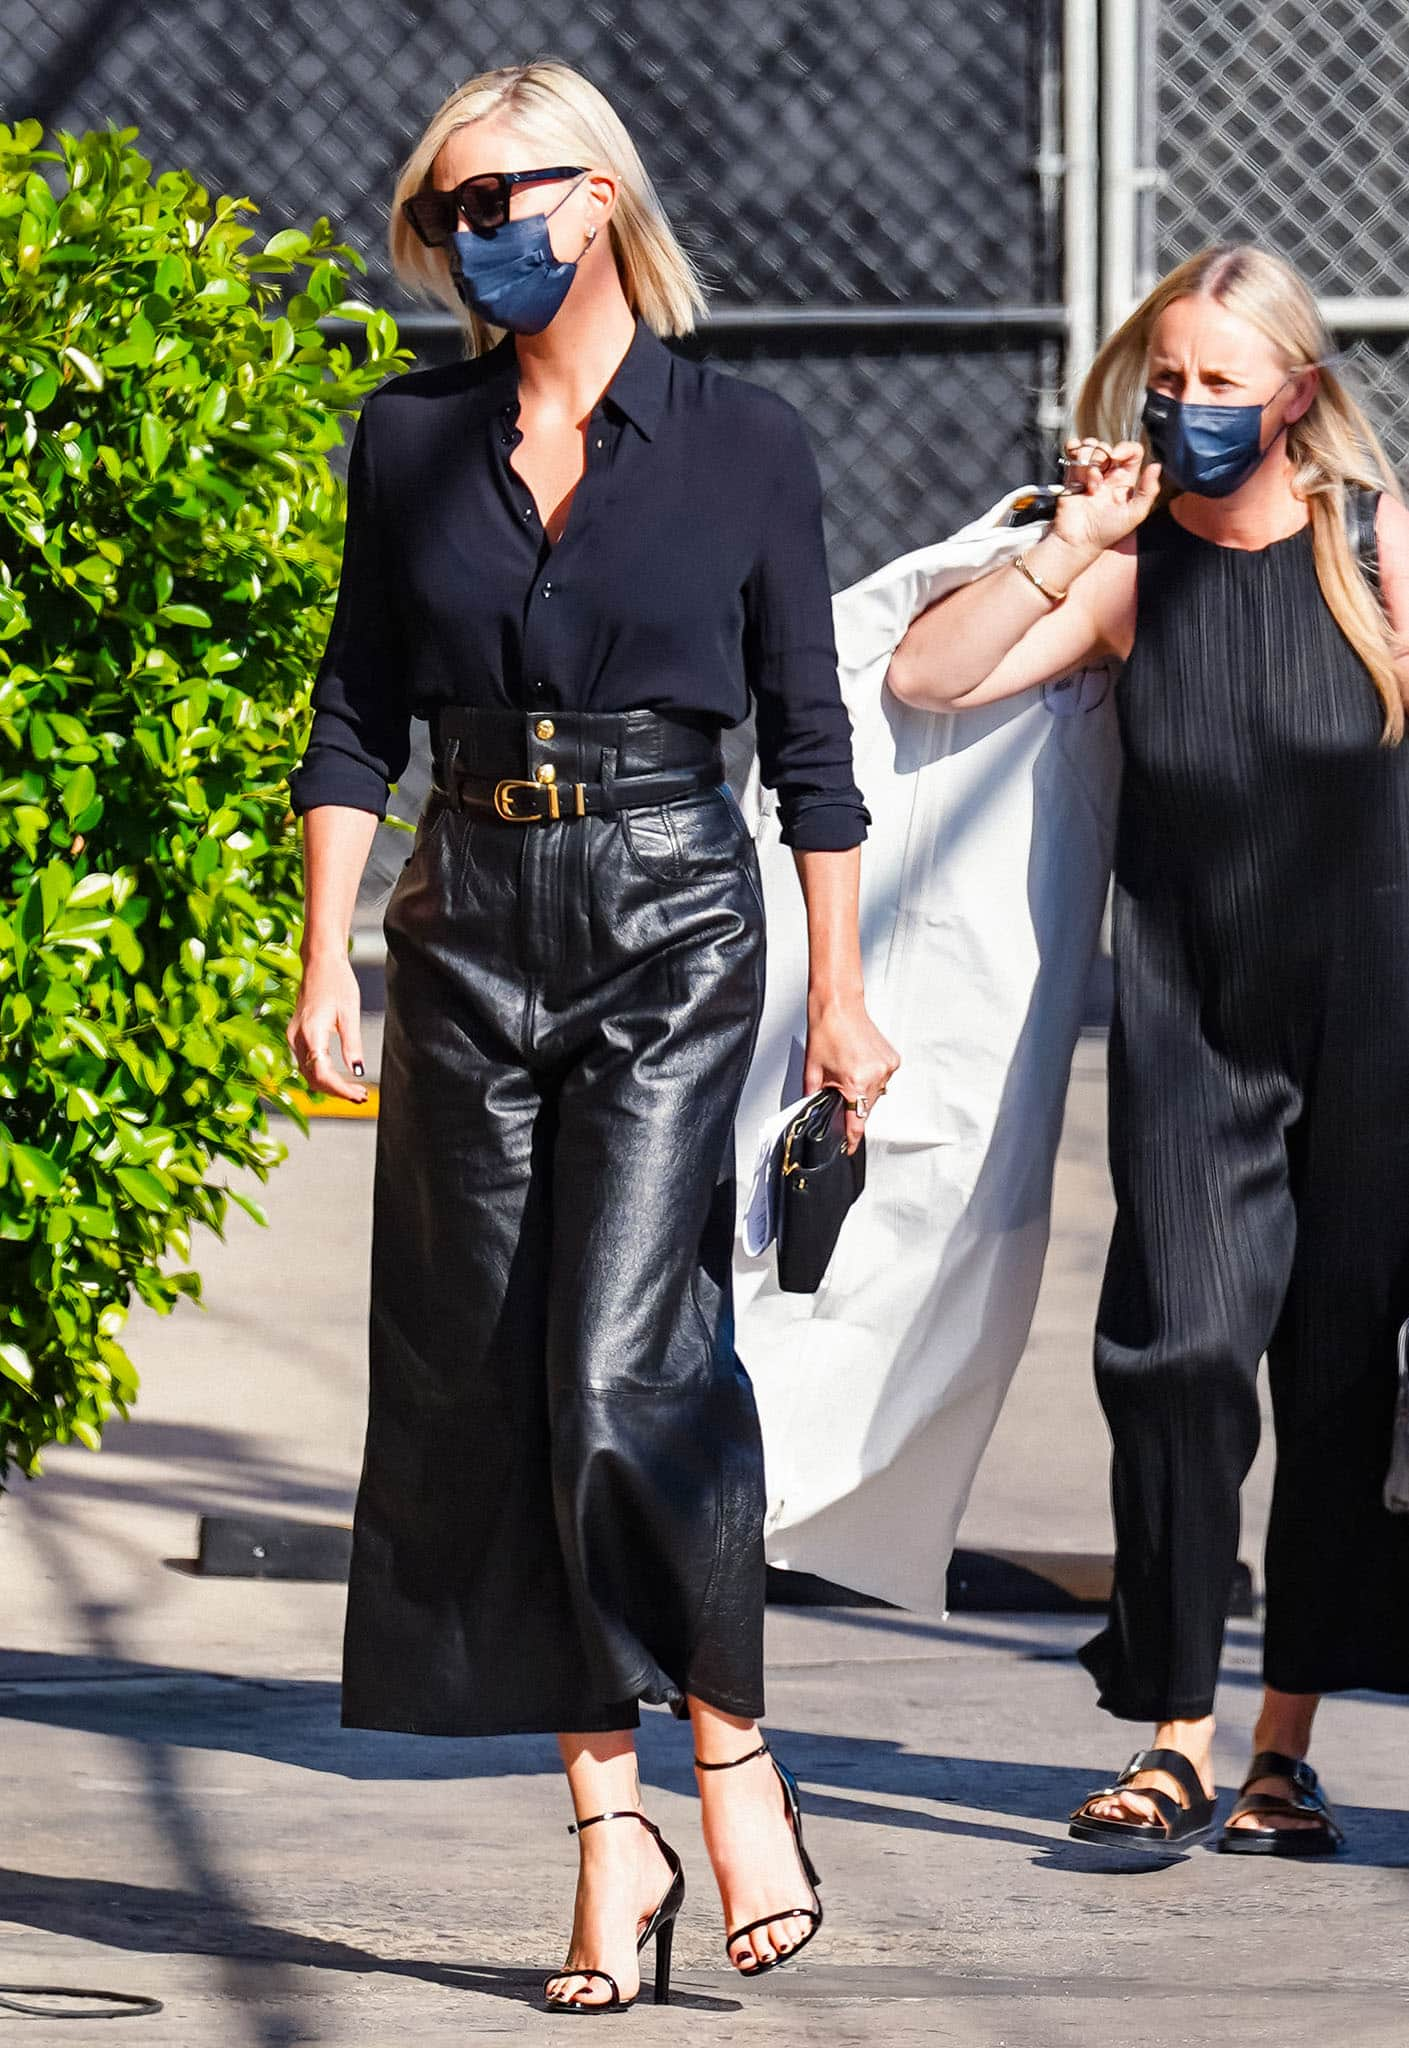 Charlize Theron arriving at the Jimmy Kimmel Live studio to promote The Addams Family 2 movie on September 30, 2021